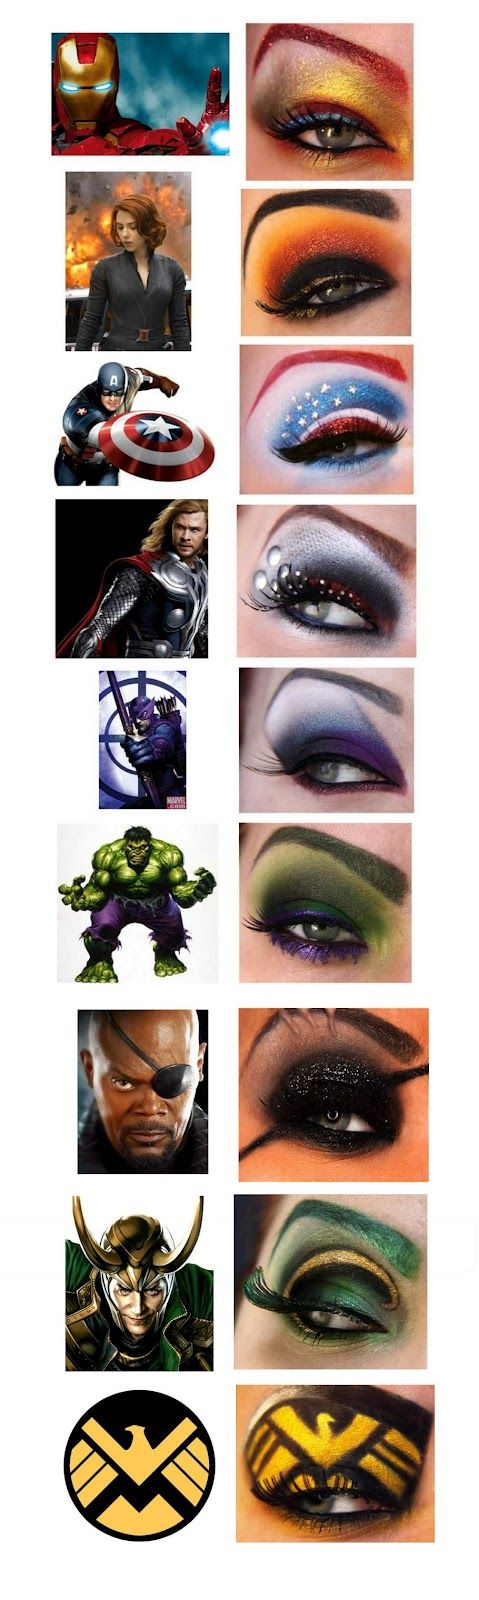 Avengers-themed eye makeup